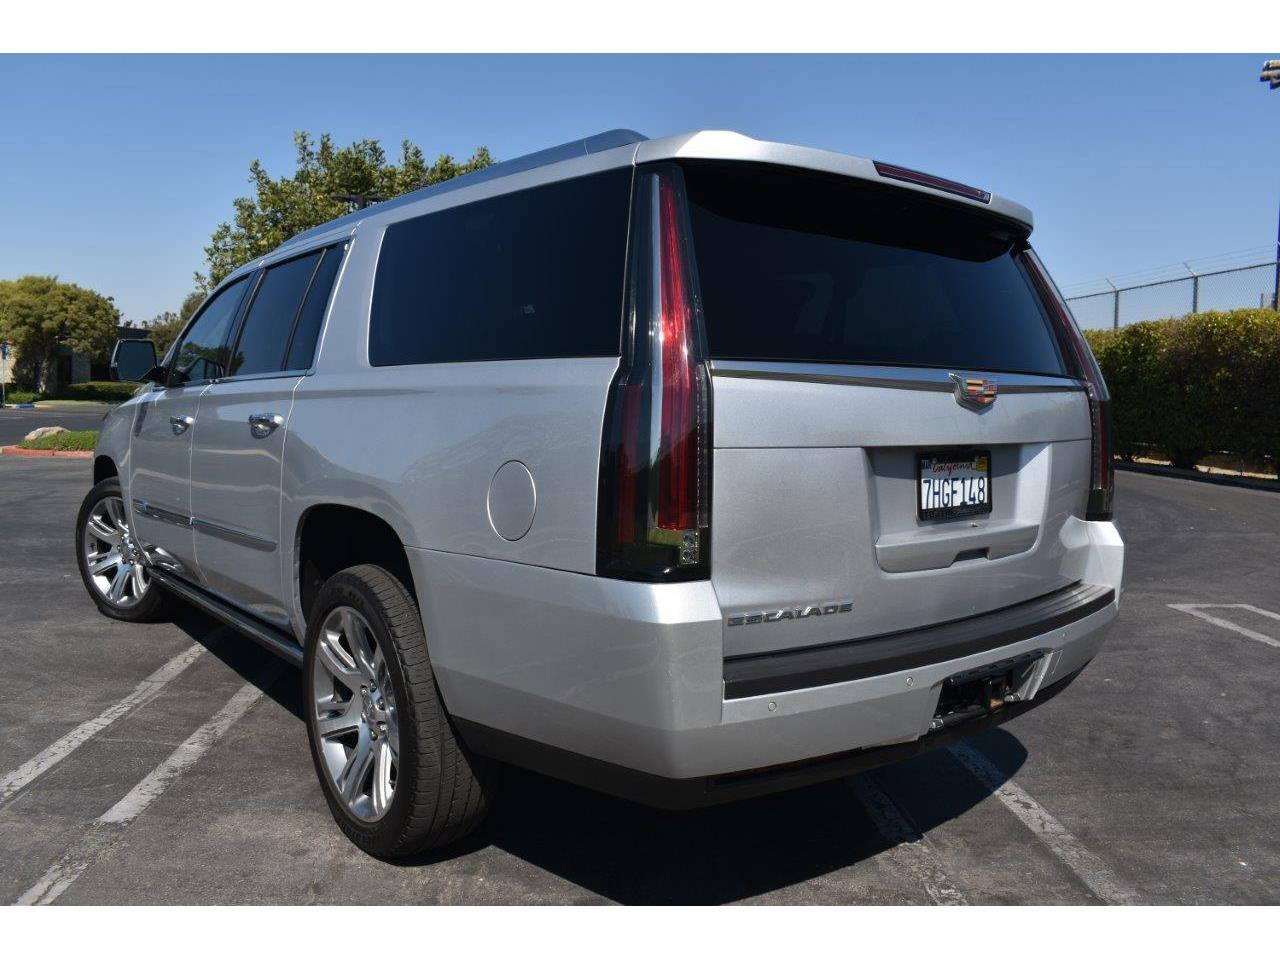 2015 Cadillac Escalade (CC-1421750) for sale in Costa Mesa, California